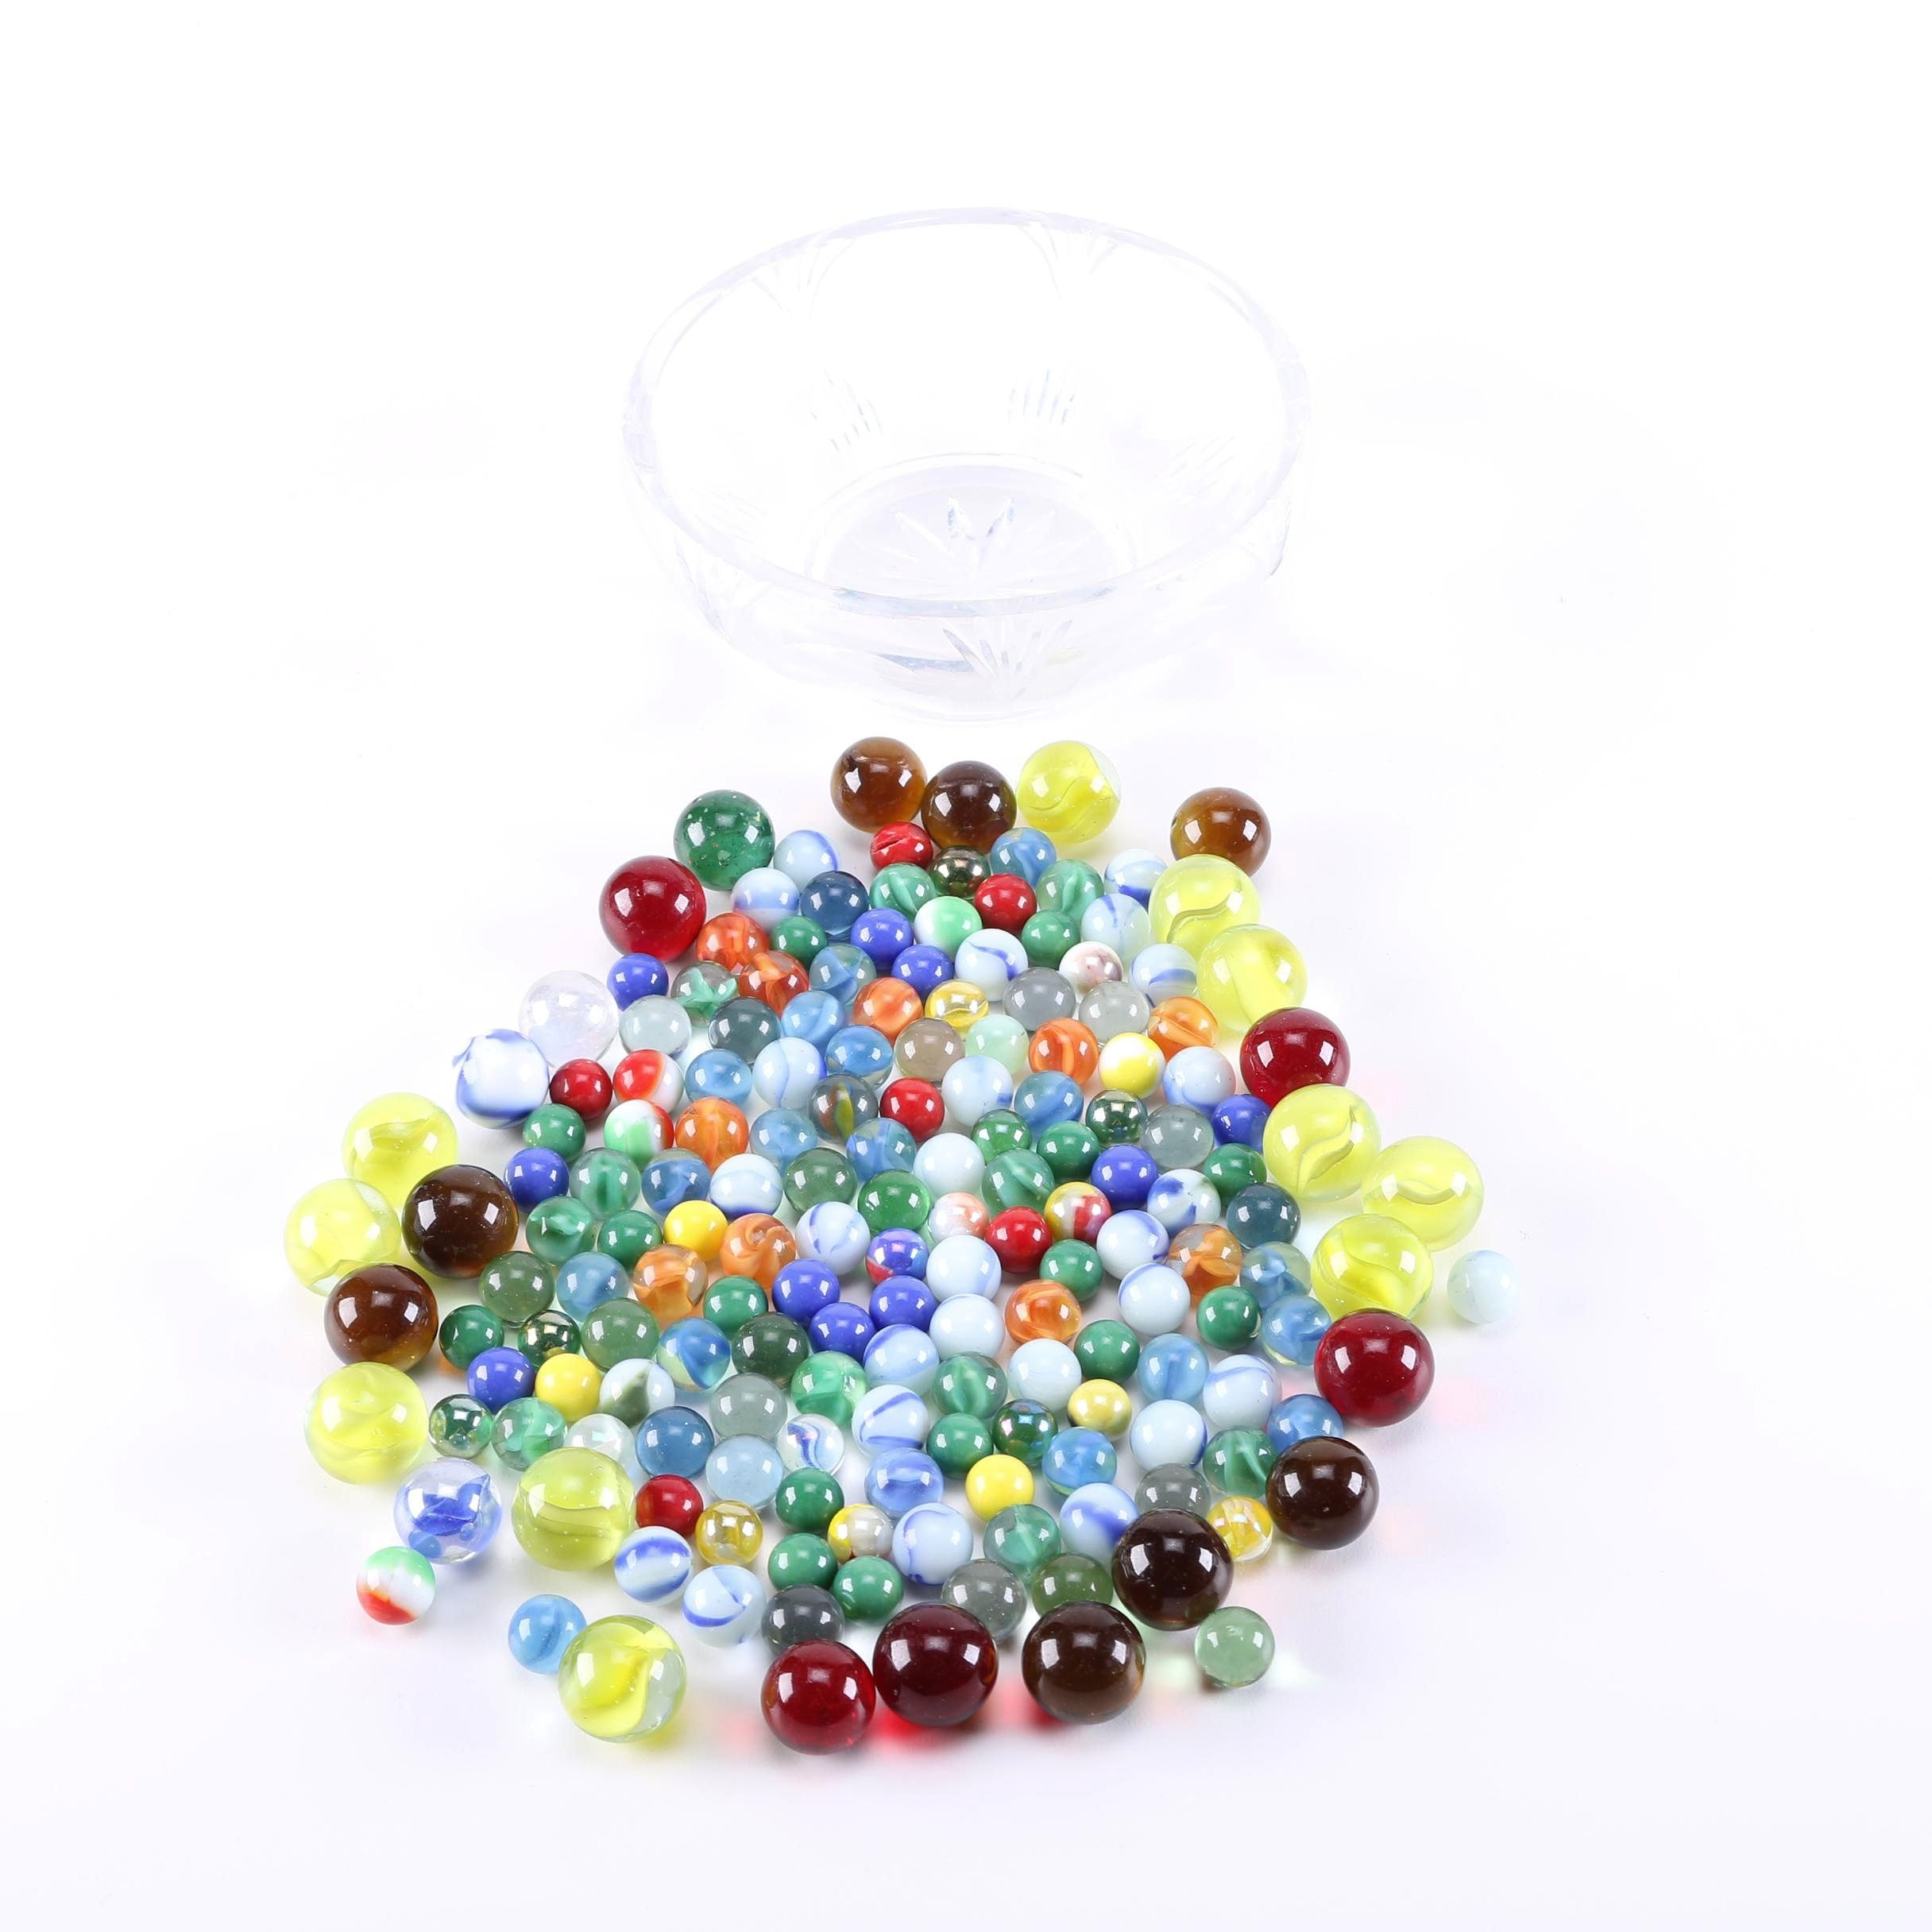 Collection of Marbles in a Glass Dish